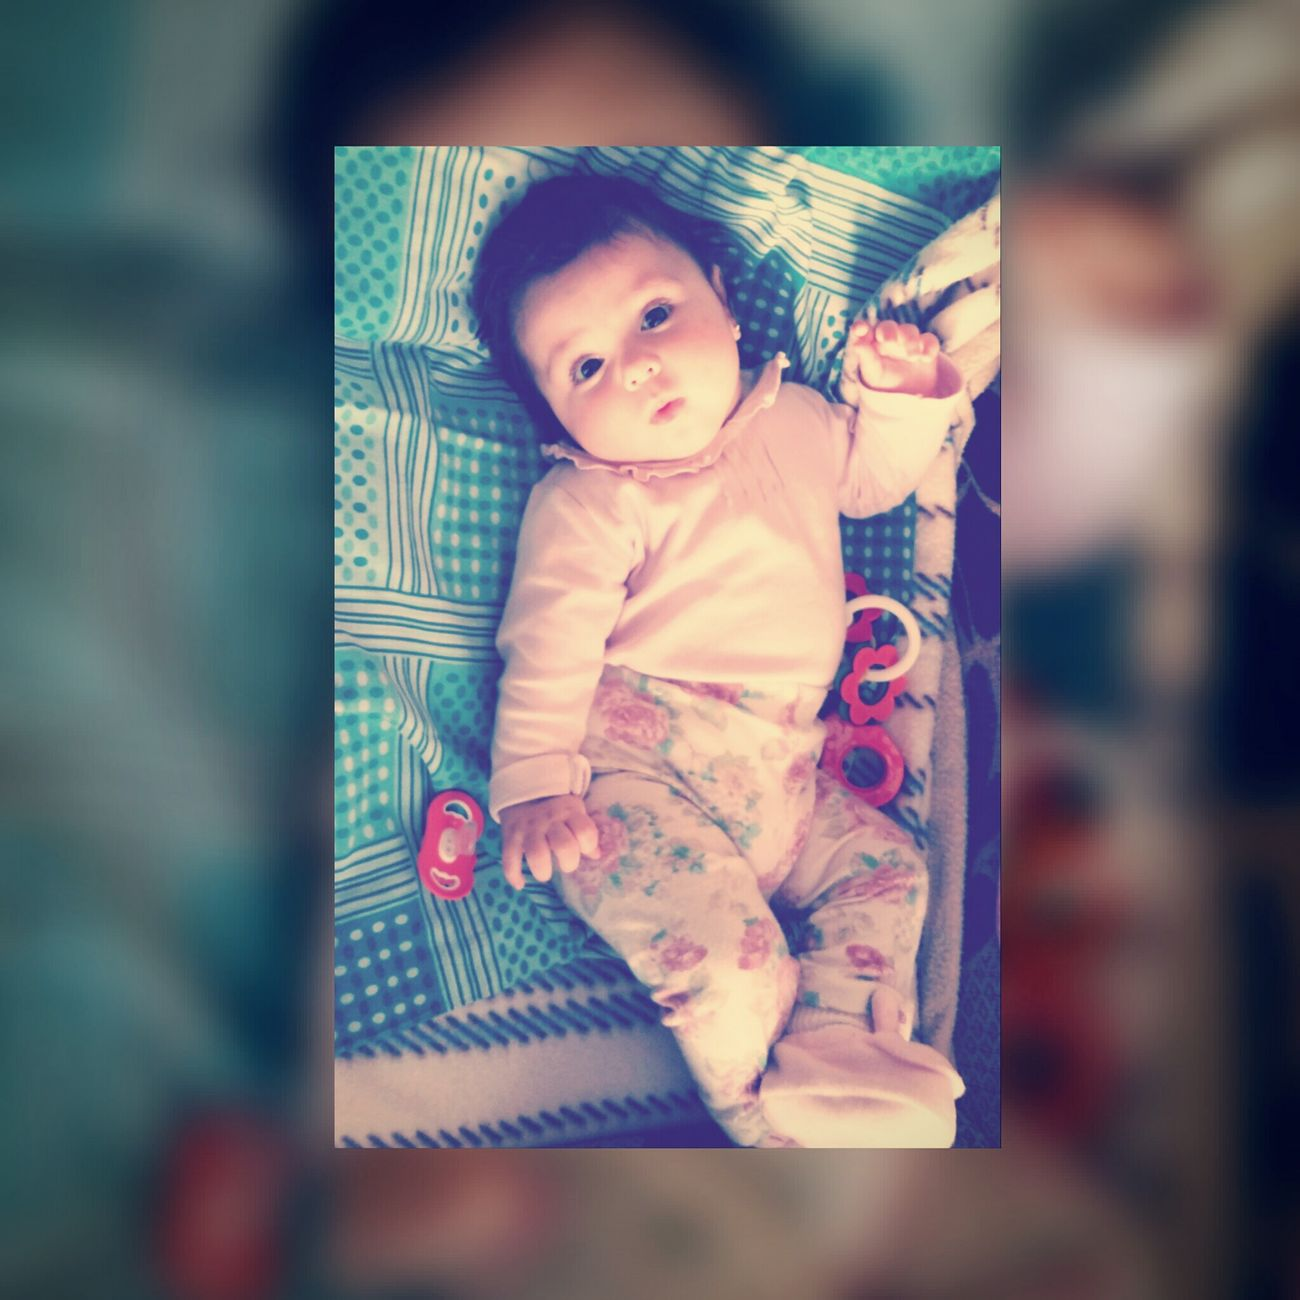 Babygirl Moments Authentic Moments Enjoying Life Relaxing Time Hello World My Little Princess My Beautiful Niece ♥ Love My Little Niece ❤ Eyeemphotography